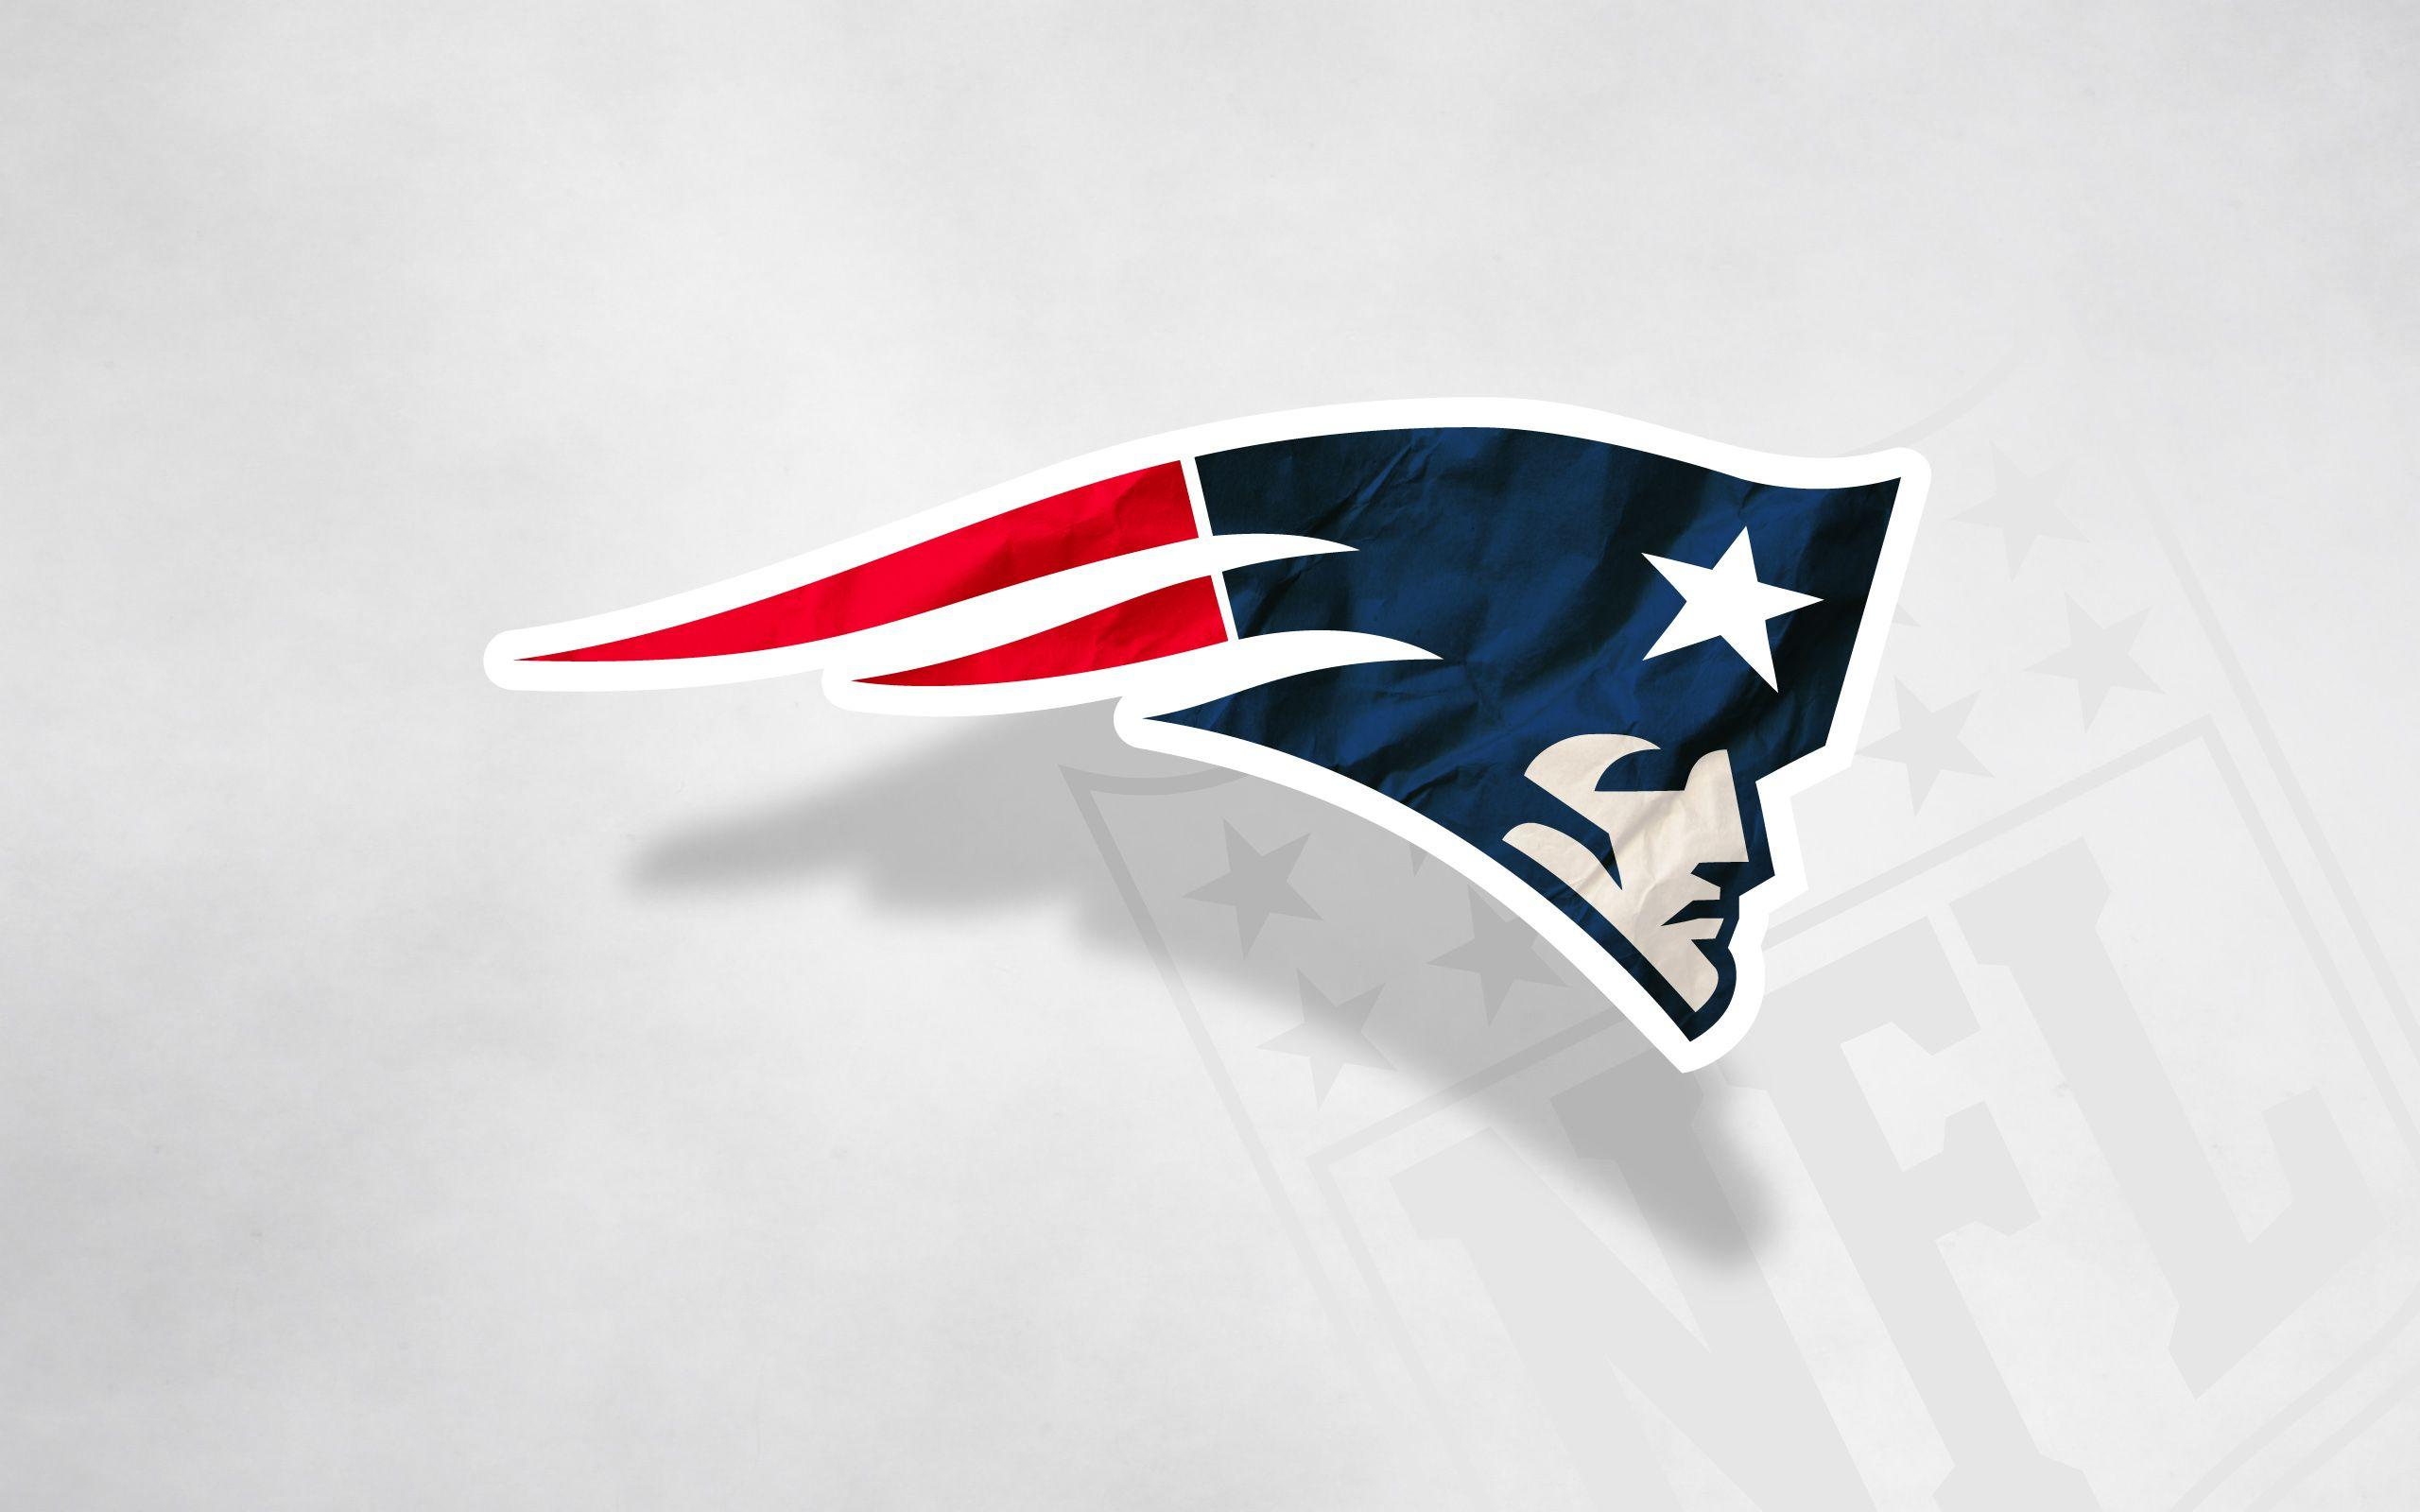 New England Patriots Wallpapers HD | HD Wallpapers, Backgrounds ...